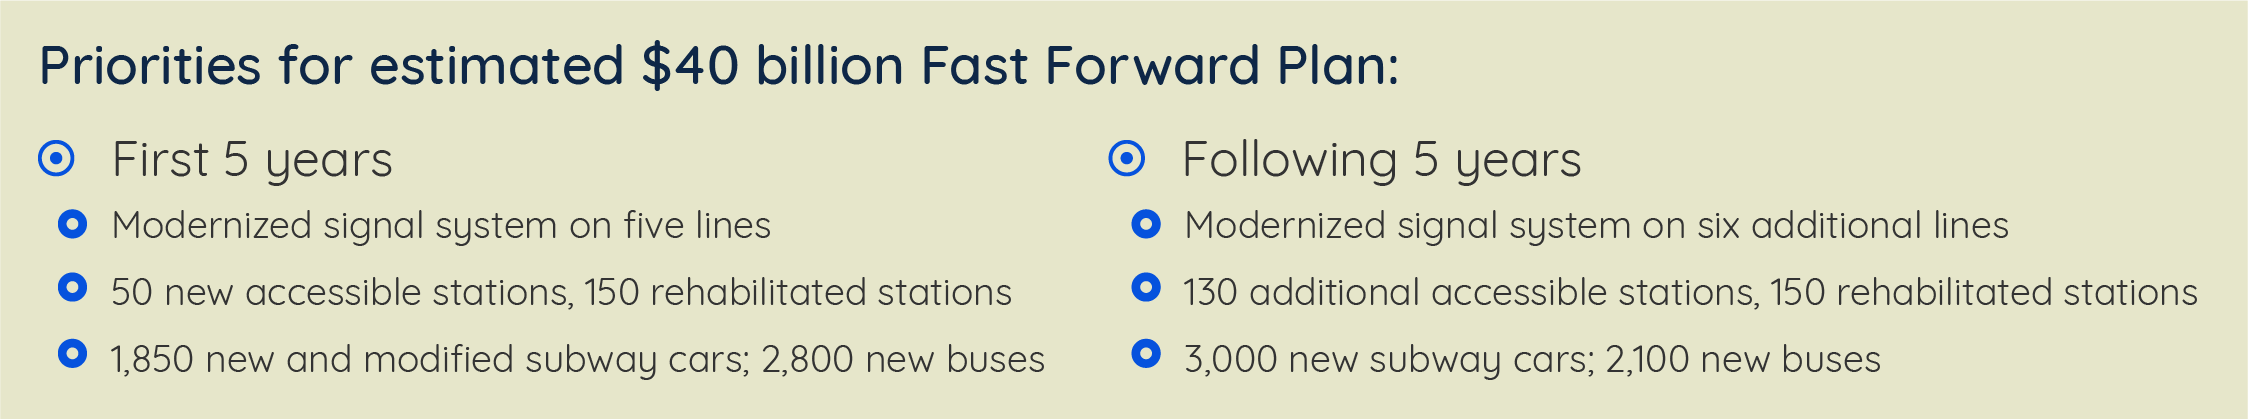 Priorities for estimated $40 billion Fast Forward Plan: